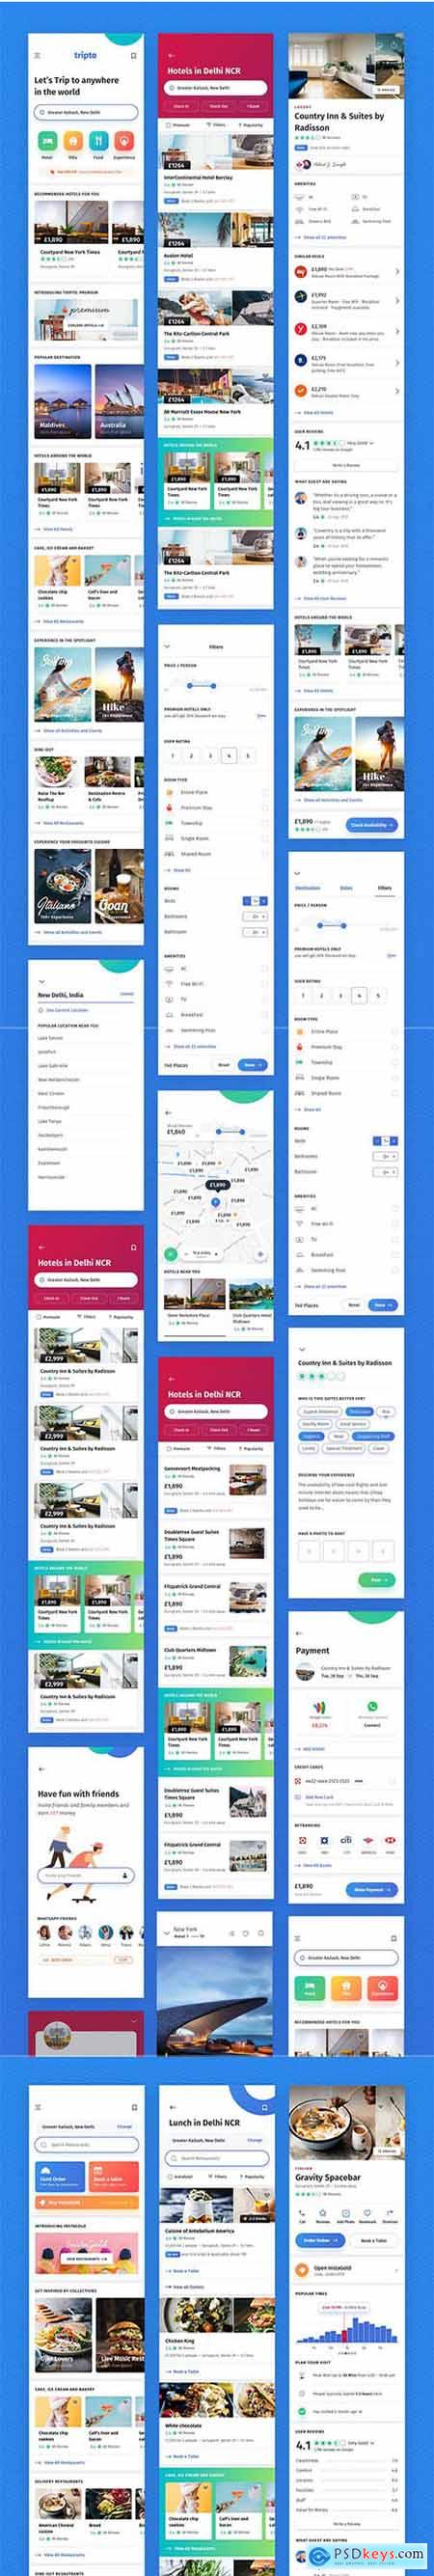 Tripto Travel and Food Mobile App UI-kit